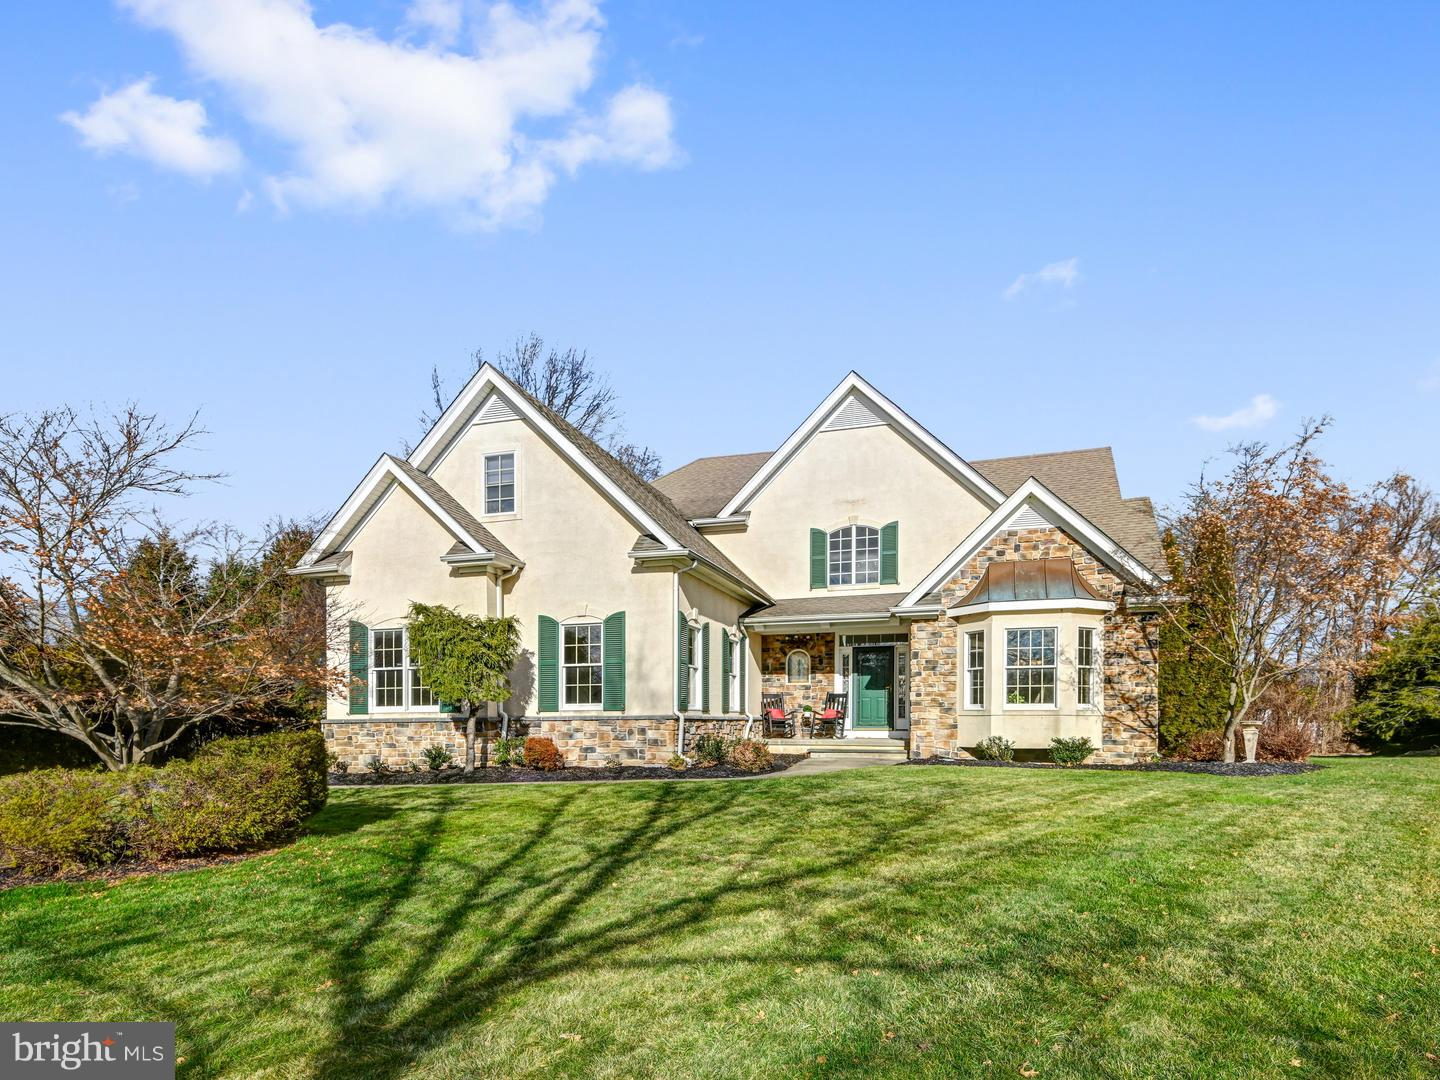 Single Family Home for Sale at 11 DANSER Drive Cranbury, New Jersey 08512 United StatesMunicipality: Cranbury Township